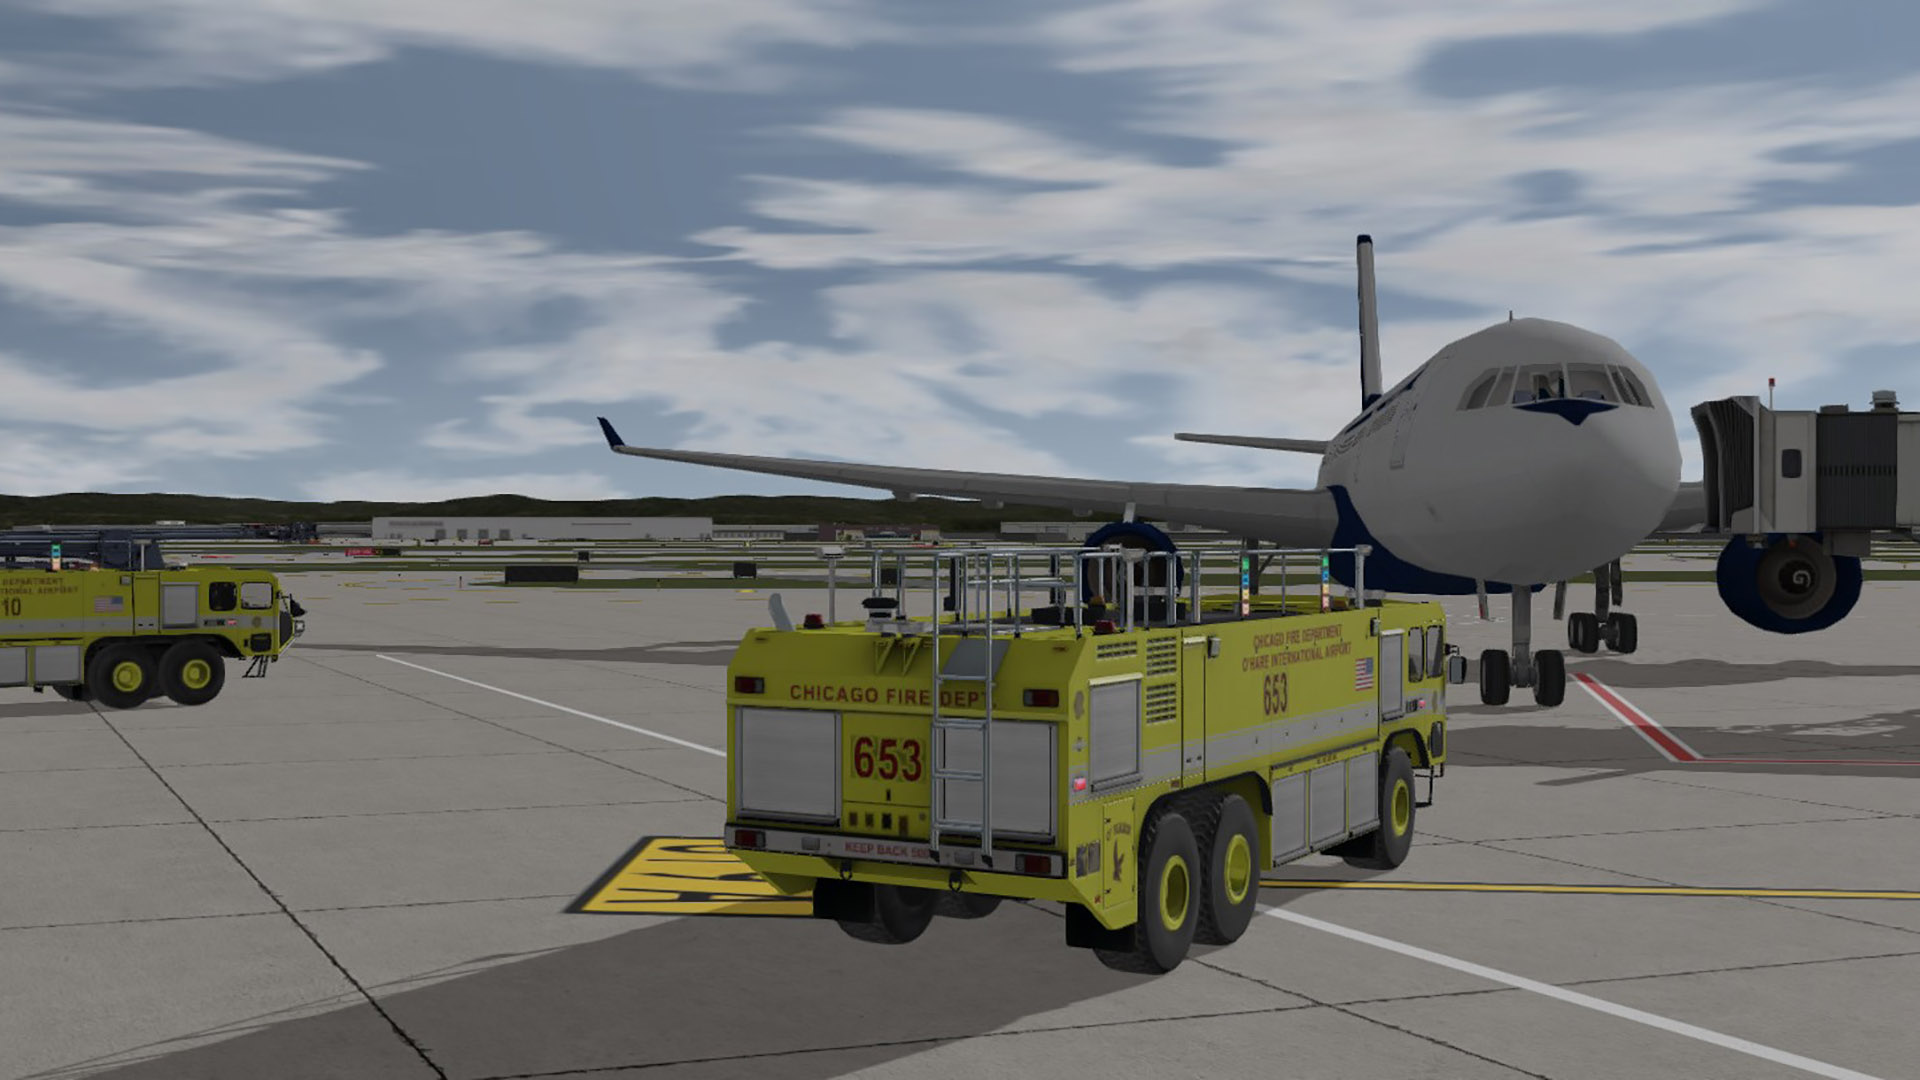 Oshkosh Striker ARFF Truck responding to an emergency at a gate with passengers ready to evacuate.